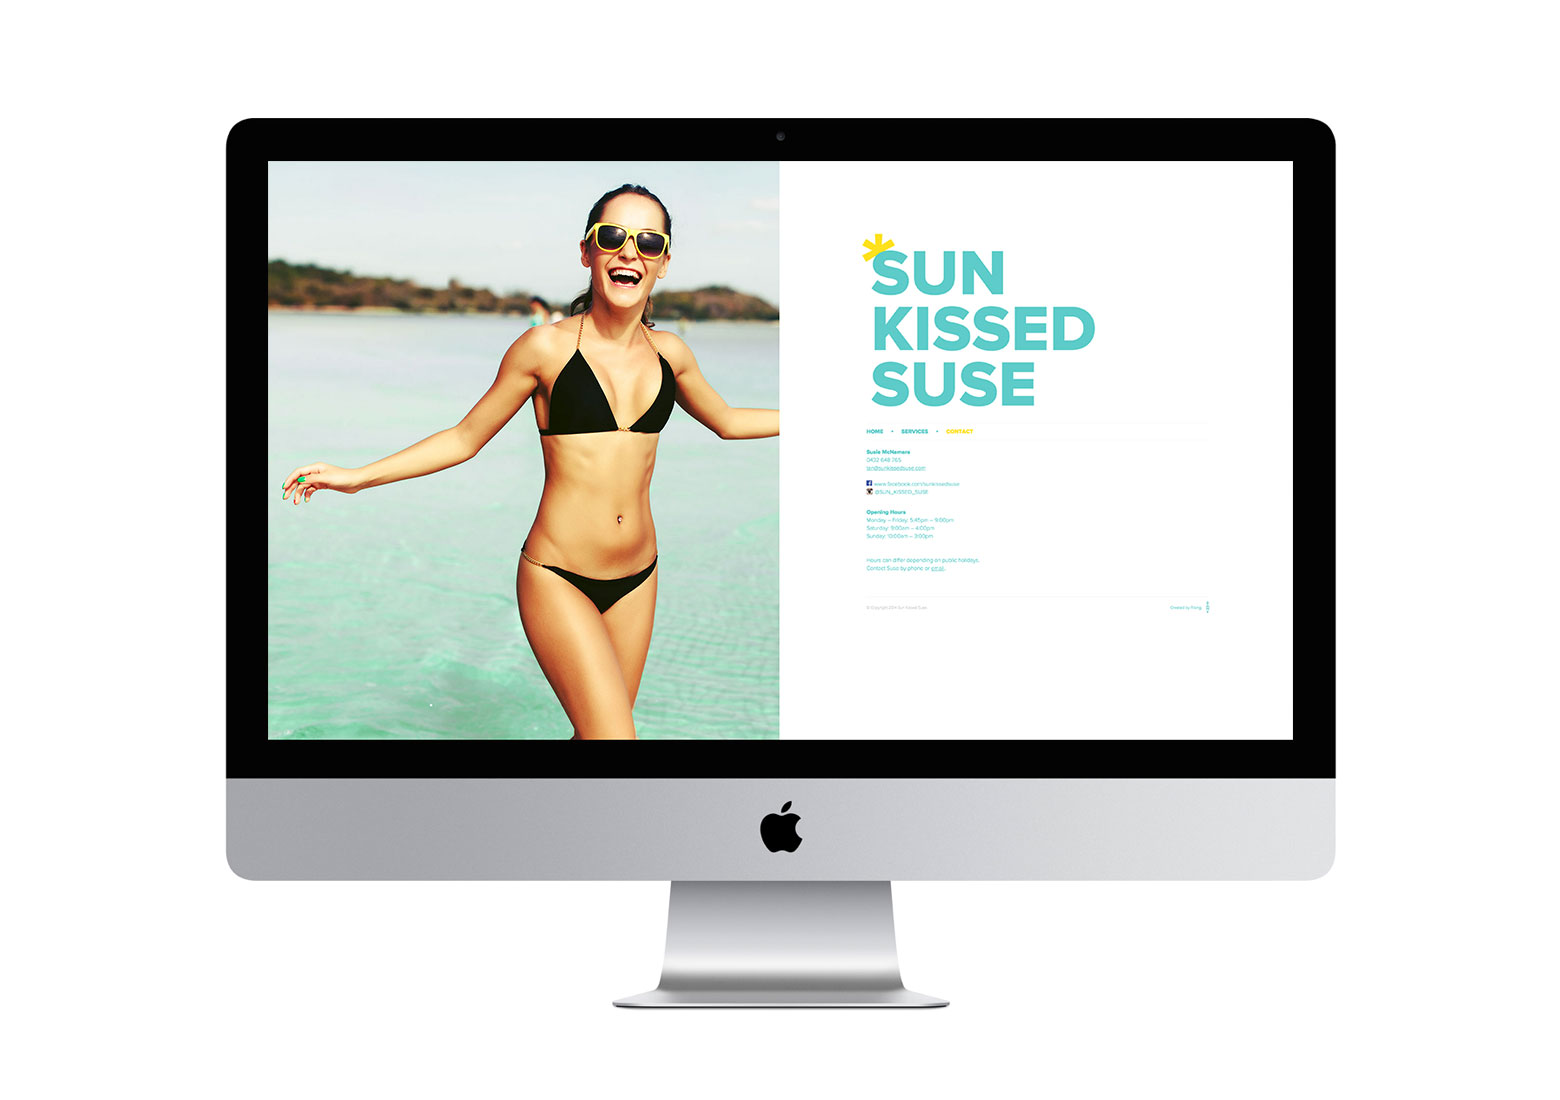 Sunkissed Suse by Rising Creative